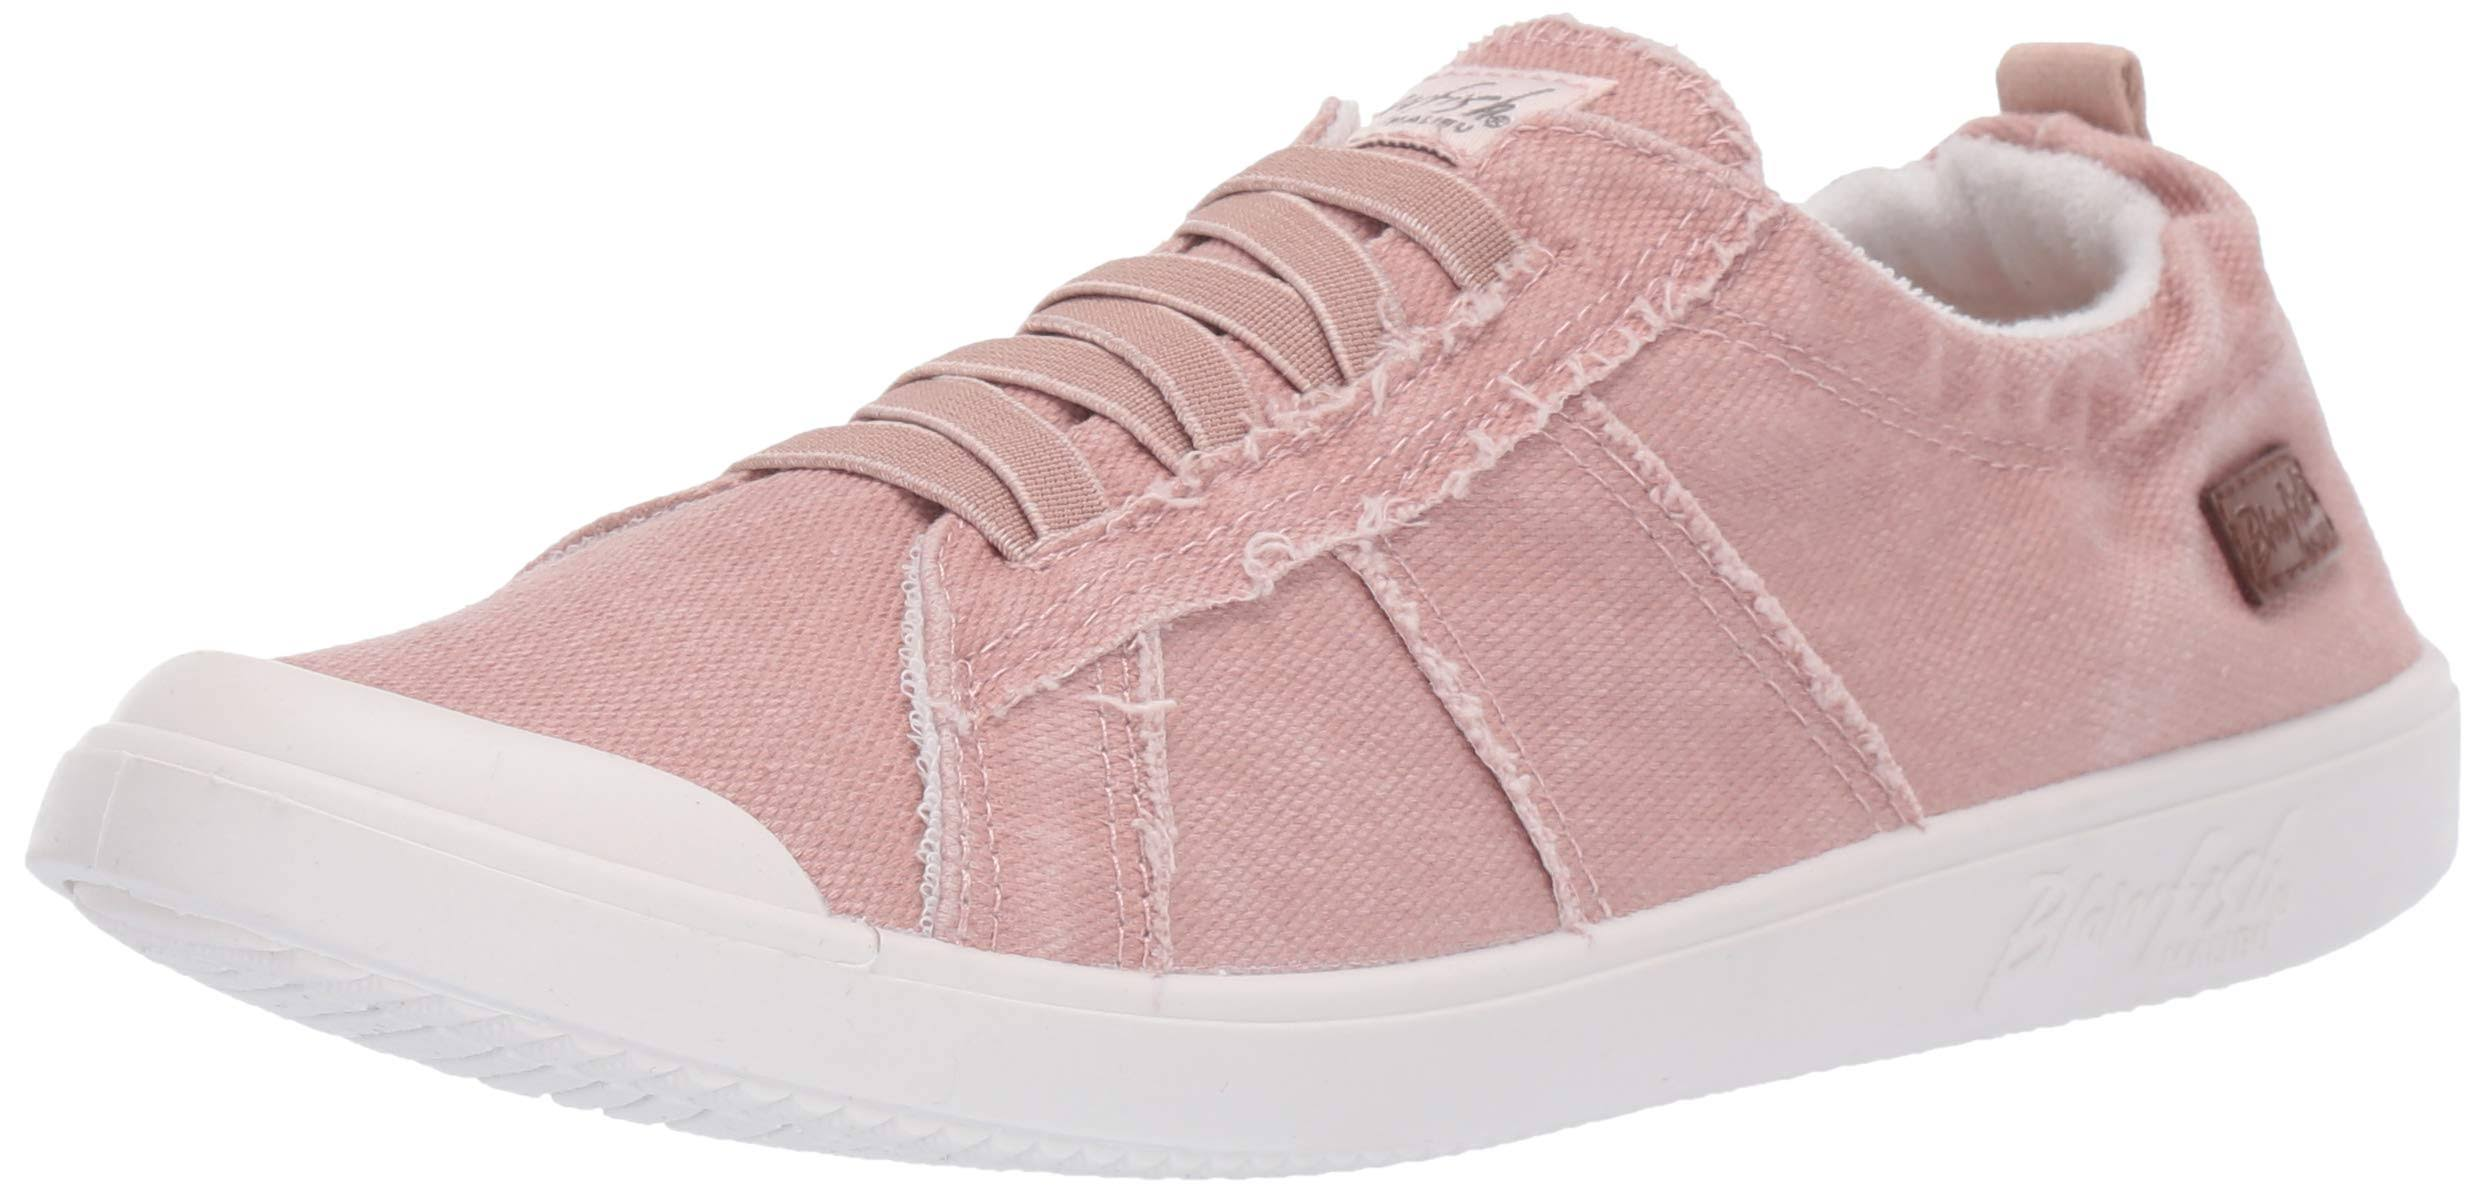 Blowfish Malibu Women's Vex Sneaker